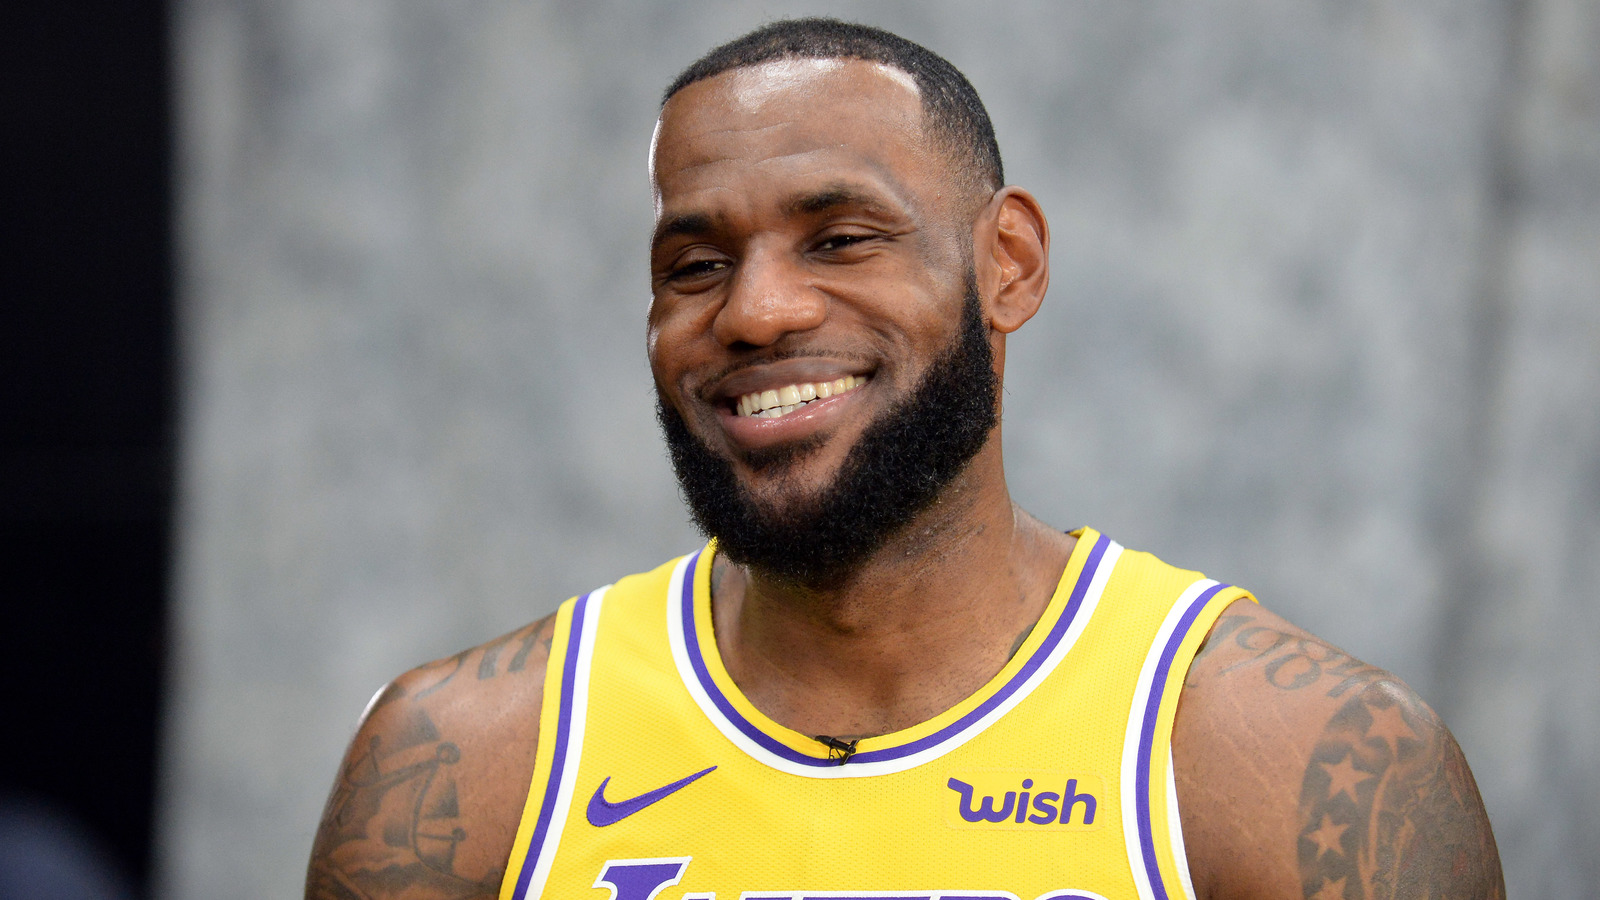 Tickets for LeBron James's Laker preseason debut reportedly hard to get